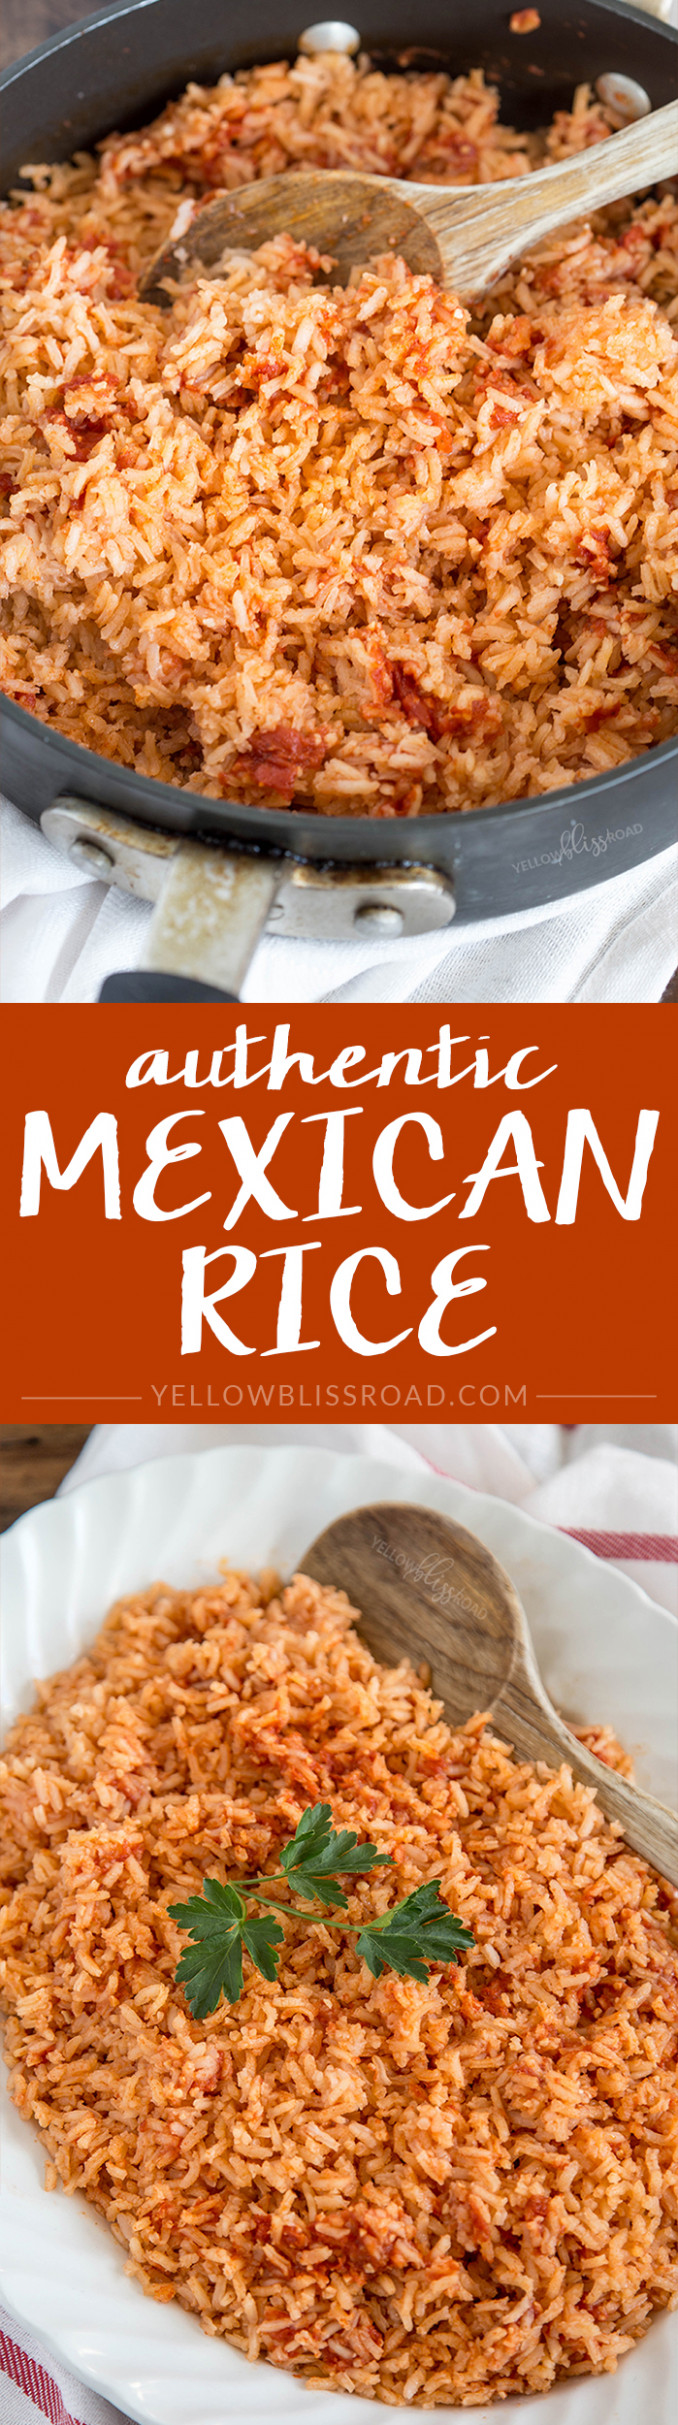 Authentic Mexican Rice - authentic mexican food recipes